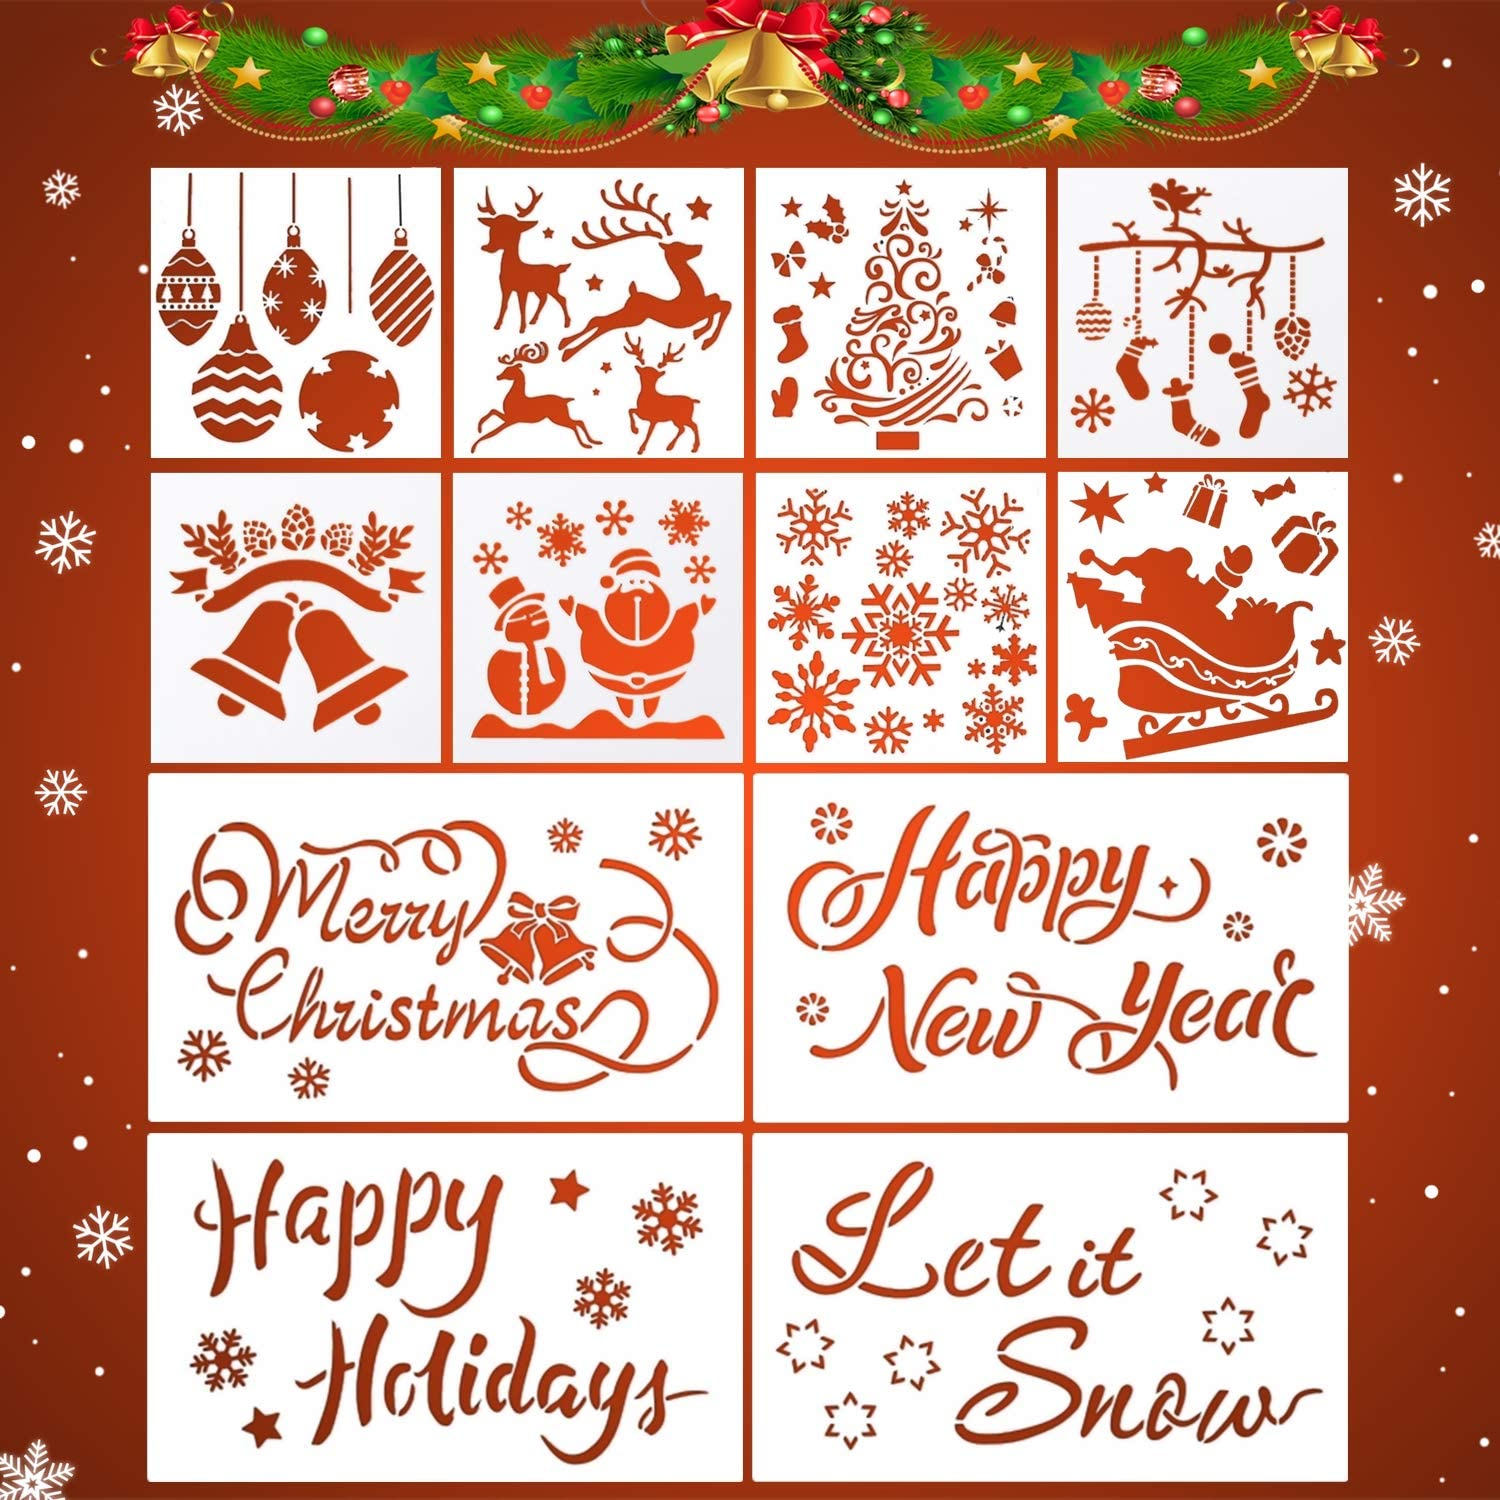 Nefeeko Christmas Stencils Template, 12PCS Reusable Plastic Painting Crafts Stencils for Wood Glass Window Door Wall, DIY Drawing Crafts Home Office Decor Christmas Decorations for Kids